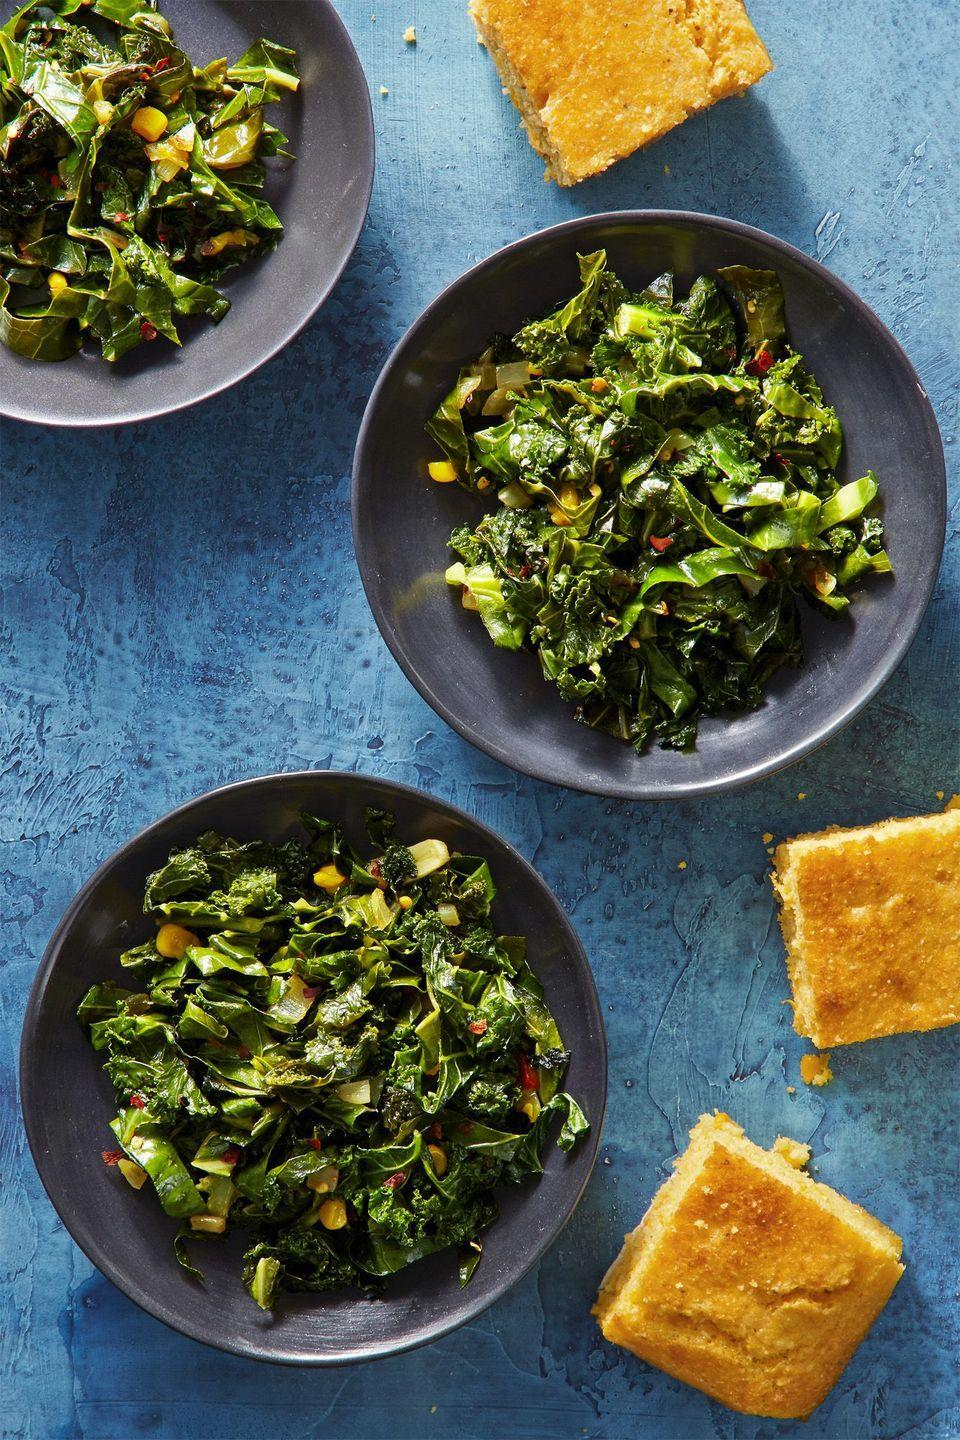 """<p>The color green symbolizes luck — think about four-leaf clovers, dollar bills, and jade jewelry. As if that's not enough, eating a plate full of greens (kale, green beans, and Brussels sprouts) will start your year off on a healthy note. </p><p><strong>Try these recipes:</strong></p><p><em><em><a href=""""https://www.goodhousekeeping.com/food-recipes/easy/a27229903/sweet-pea-risotto-recipe/"""" rel=""""nofollow noopener"""" target=""""_blank"""" data-ylk=""""slk:Sweet Pea Risotto »"""" class=""""link rapid-noclick-resp"""">Sweet Pea Risotto »</a></em></em> </p><p><em><a href=""""https://www.goodhousekeeping.com/food-recipes/a28186104/grilled-green-beans-fennel-and-farro-recipe/"""" rel=""""nofollow noopener"""" target=""""_blank"""" data-ylk=""""slk:Grilled Green Beans, Fennel, and Farro »"""" class=""""link rapid-noclick-resp"""">Grilled Green Beans, Fennel, and Farro »</a></em></p><p><em><a href=""""https://www.goodhousekeeping.com/food-recipes/easy/a26767475/charred-snap-peas-with-creamy-tarragon-dressing-recipe/"""" rel=""""nofollow noopener"""" target=""""_blank"""" data-ylk=""""slk:Charred Snap Peas with Creamy Tarragon Dressing »"""" class=""""link rapid-noclick-resp"""">Charred Snap Peas with Creamy Tarragon Dressing »</a></em></p><p><em><a href=""""https://www.goodhousekeeping.com/food-recipes/healthy/a25323337/brussels-sprouts-with-pepitas-and-figs-recipe/"""" rel=""""nofollow noopener"""" target=""""_blank"""" data-ylk=""""slk:Brussel Sprouts with Pepitas and Figs »"""" class=""""link rapid-noclick-resp"""">Brussel Sprouts with Pepitas and Figs »</a></em></p><p><em><a href=""""https://www.goodhousekeeping.com/food-recipes/easy/a19865491/mixed-green-and-herb-toss-salad-recipe/"""" rel=""""nofollow noopener"""" target=""""_blank"""" data-ylk=""""slk:Mixed Green and Herb Toss Salad »"""" class=""""link rapid-noclick-resp"""">Mixed Green and Herb Toss Salad »</a></em> </p>"""